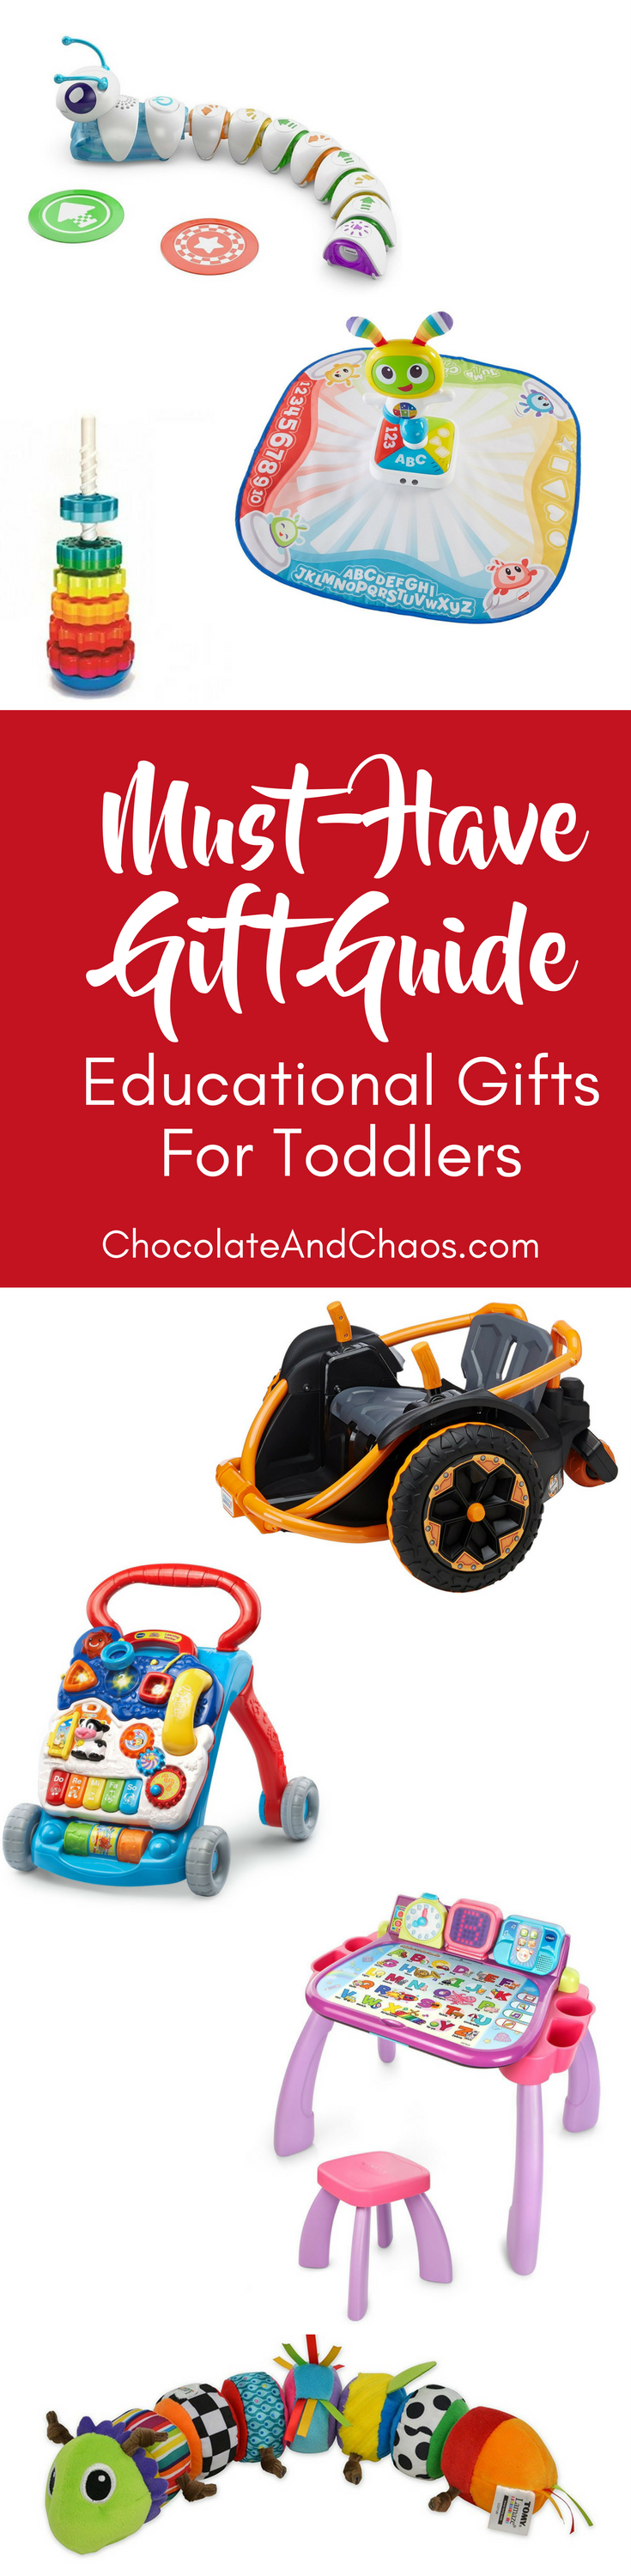 2016 Must Have Gift Guide Toddlers